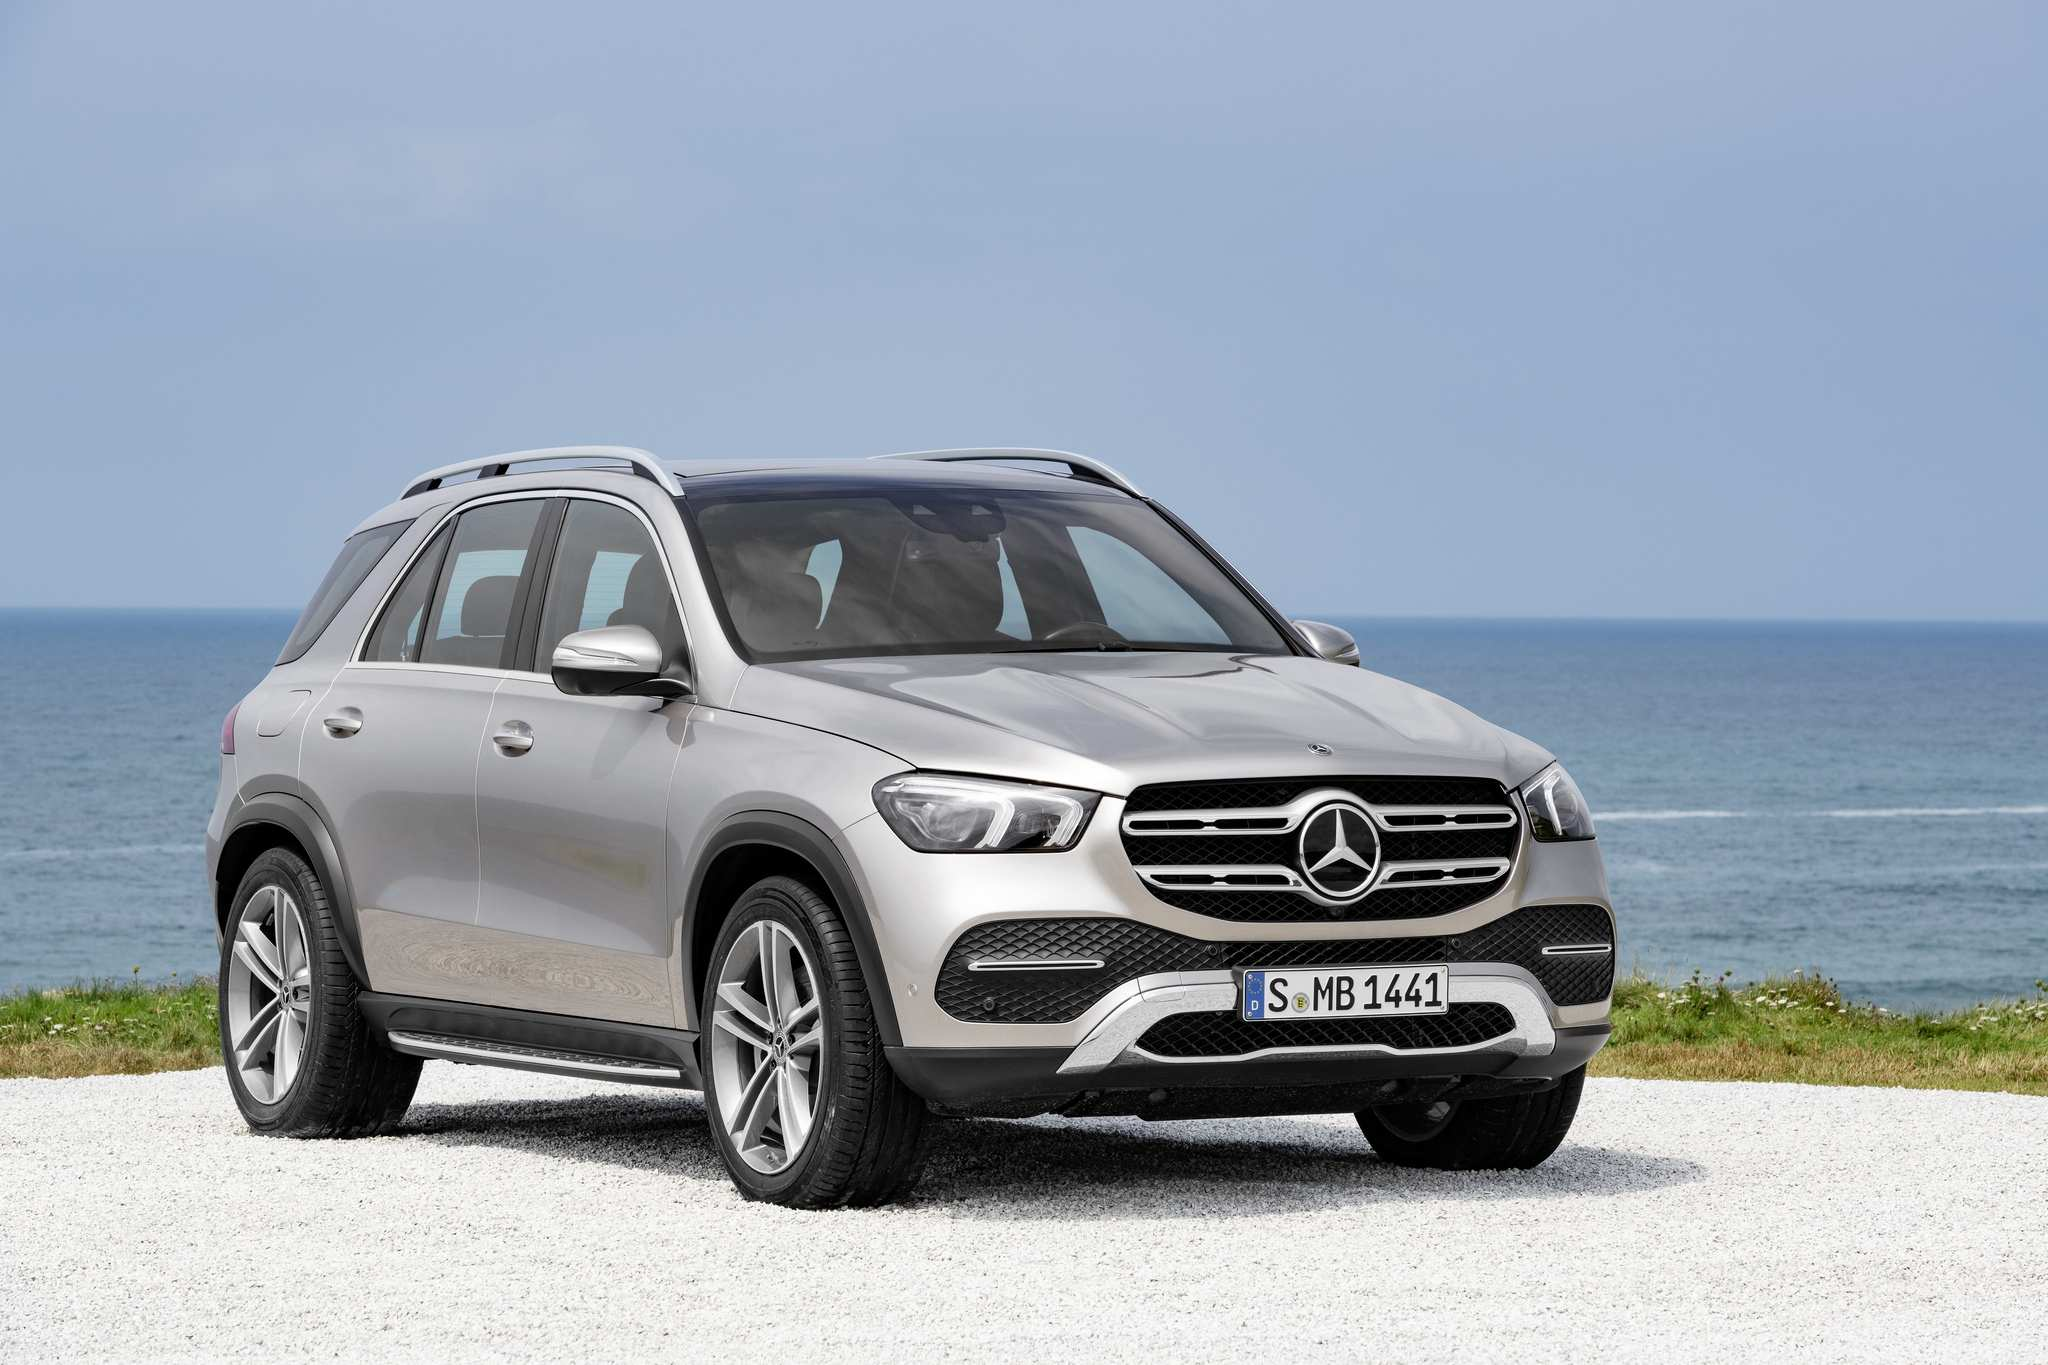 20 A Gle Mercedes 2019 Spy Shoot